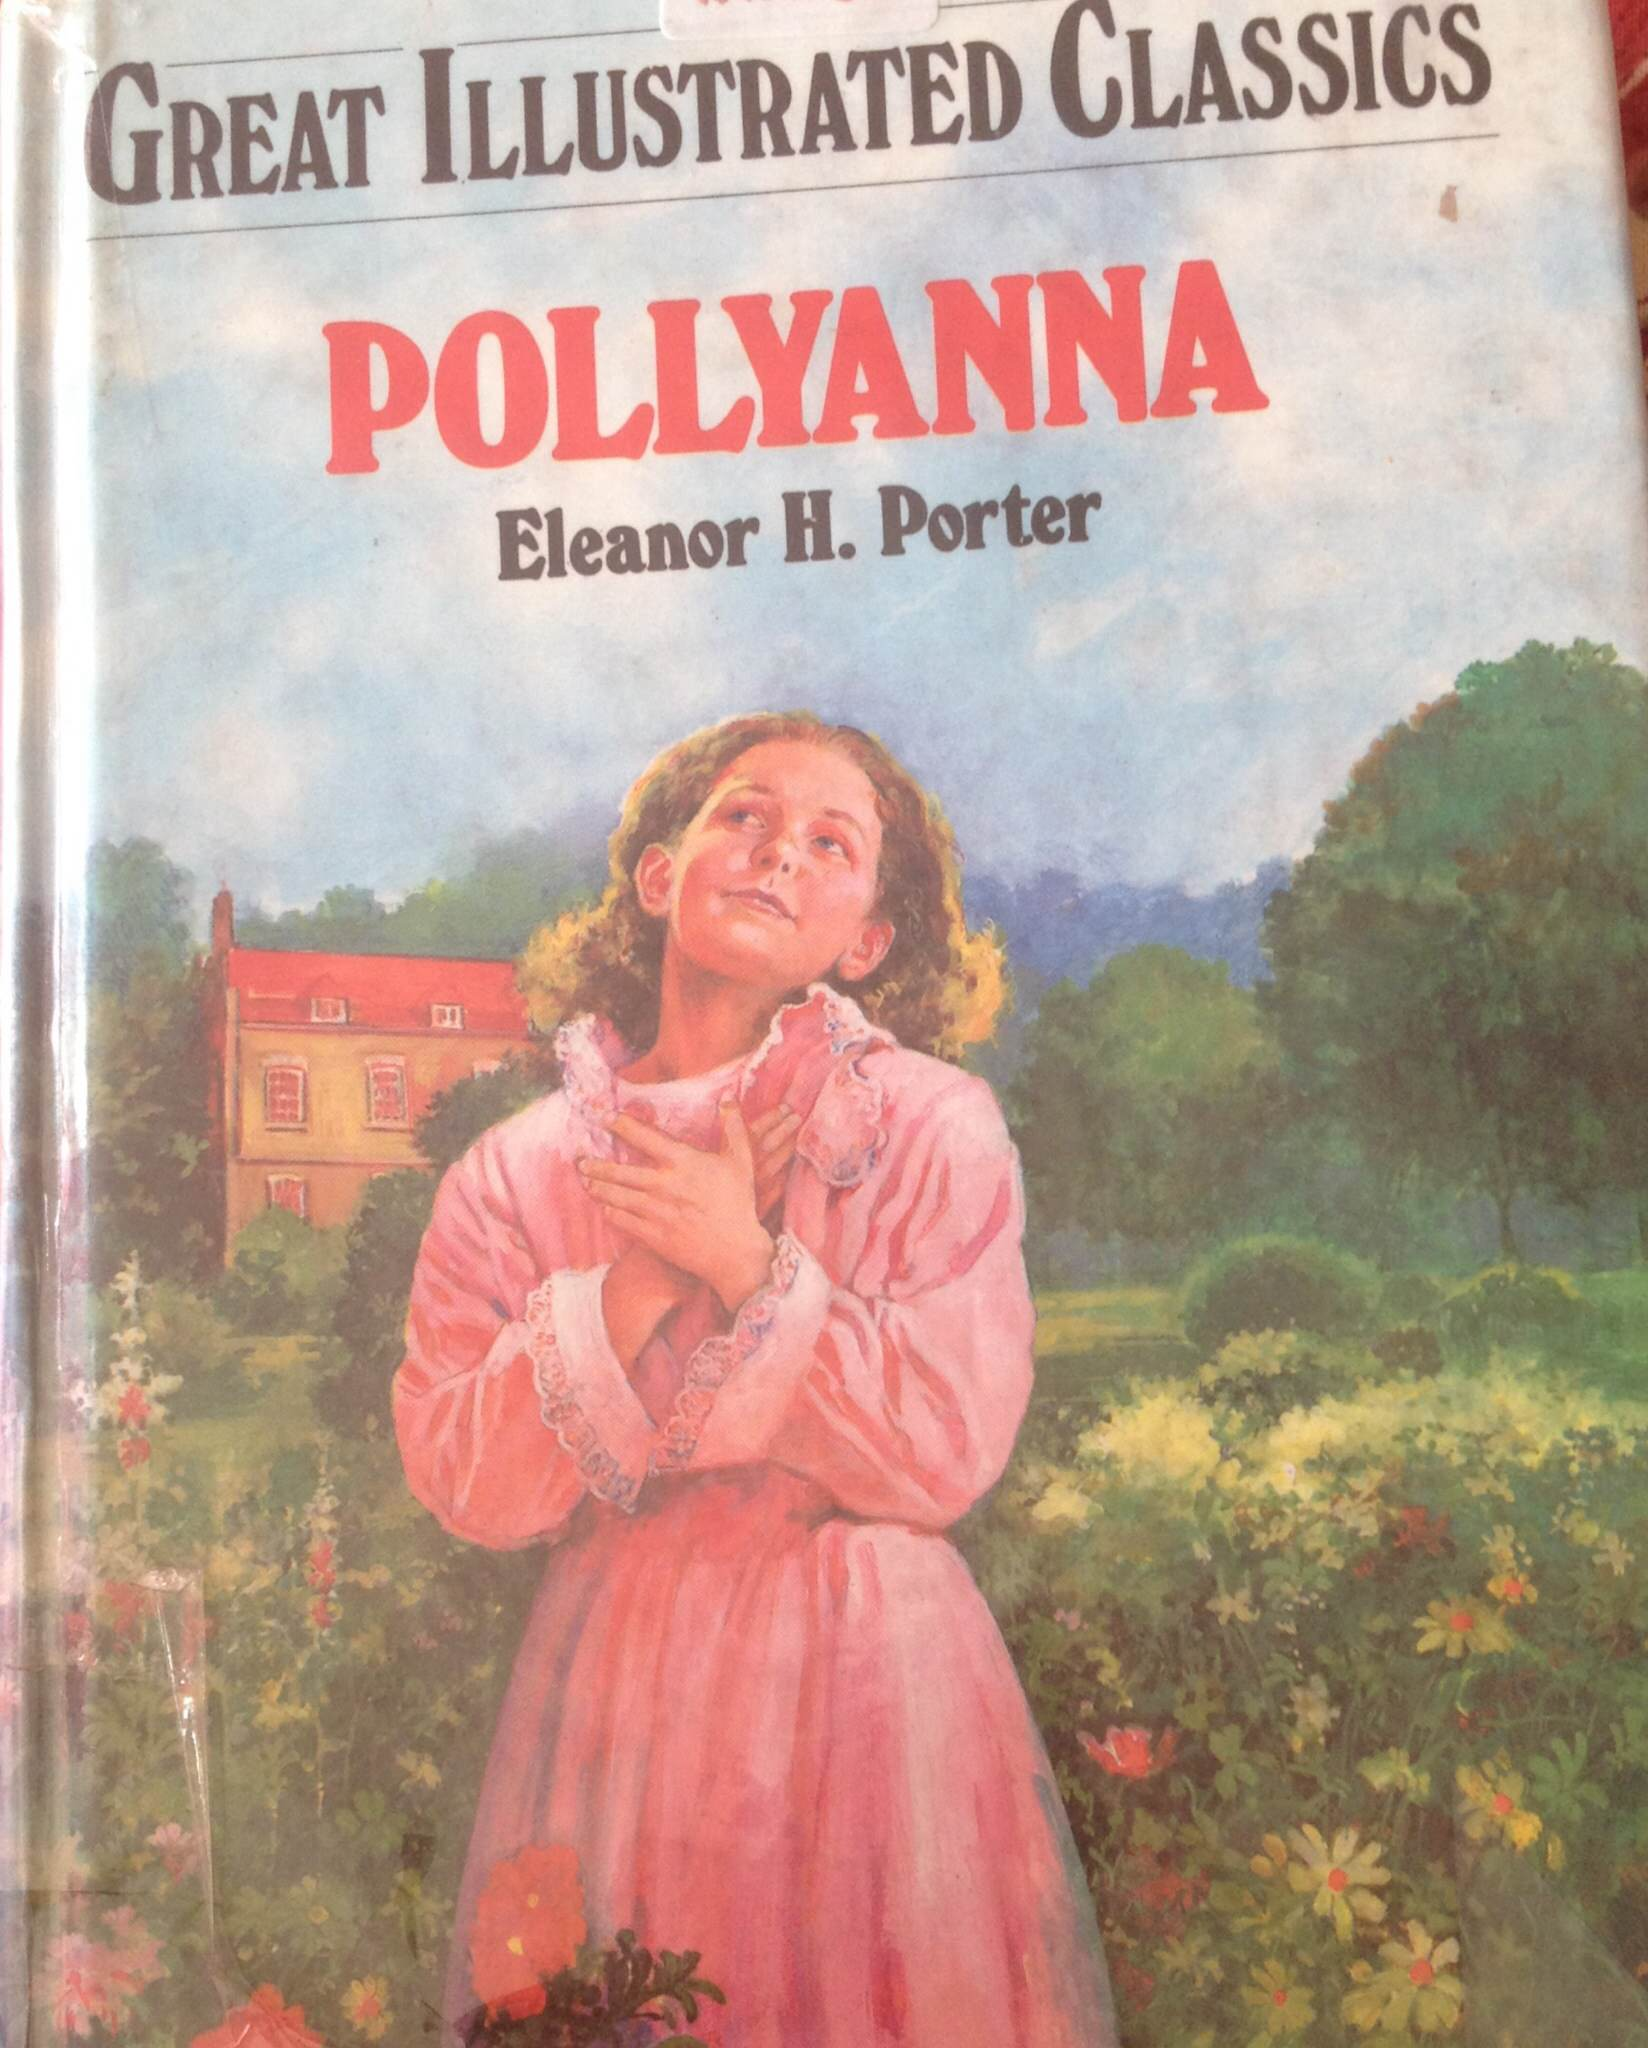 book review of pollyanna by eleanor h porter